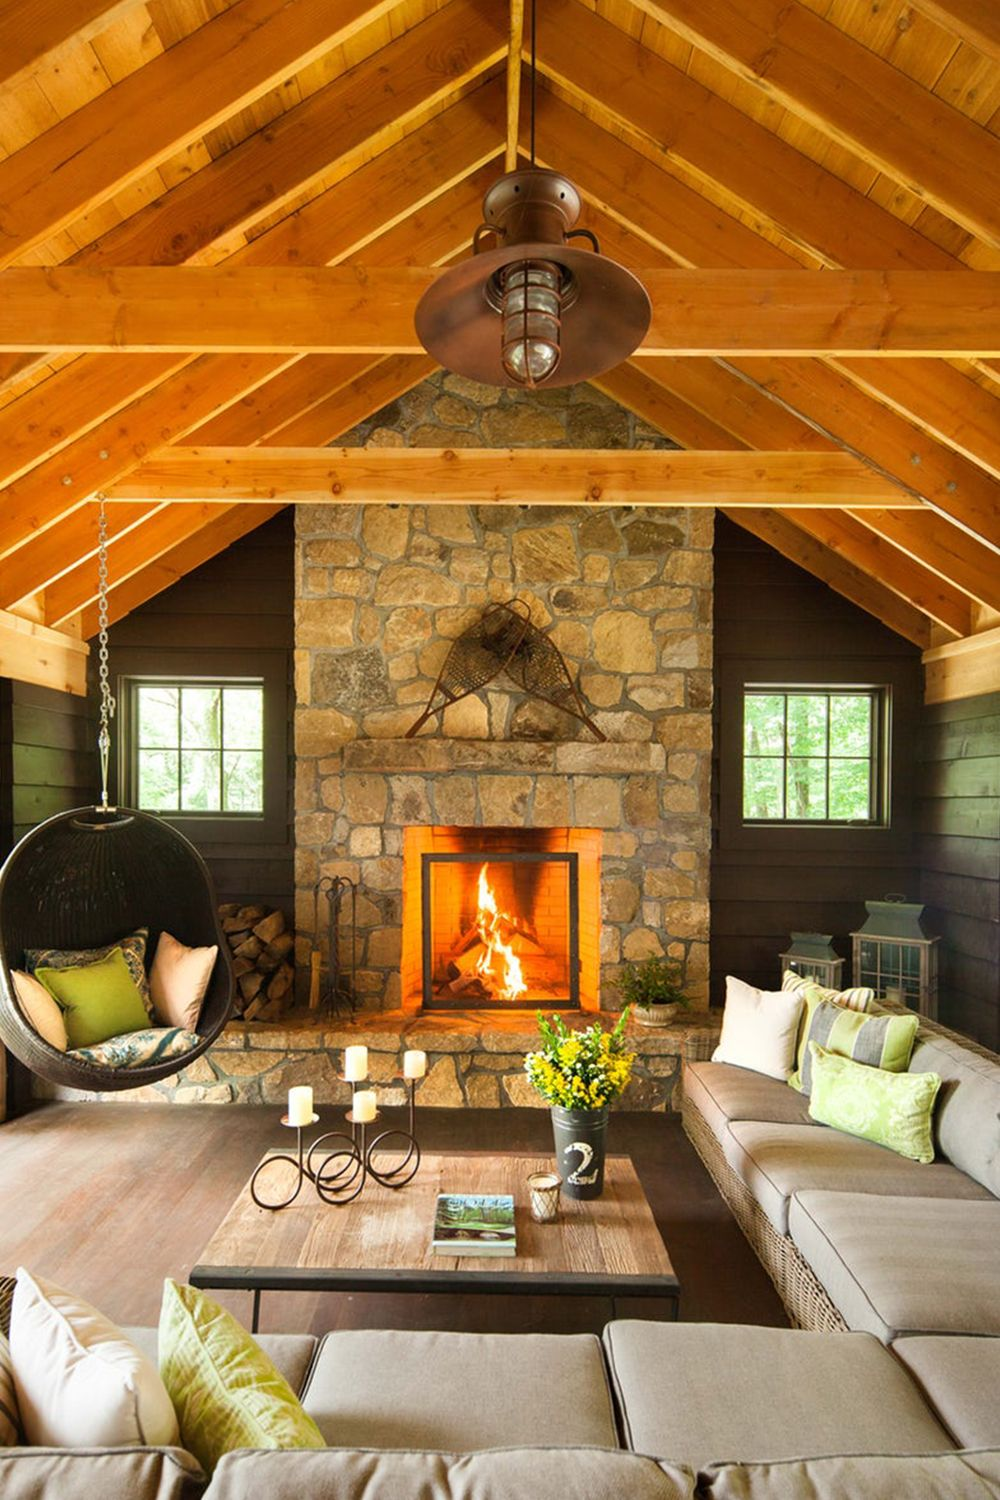 32 Wood Ceiling Designs Ideas For Wood Plank Ceilings